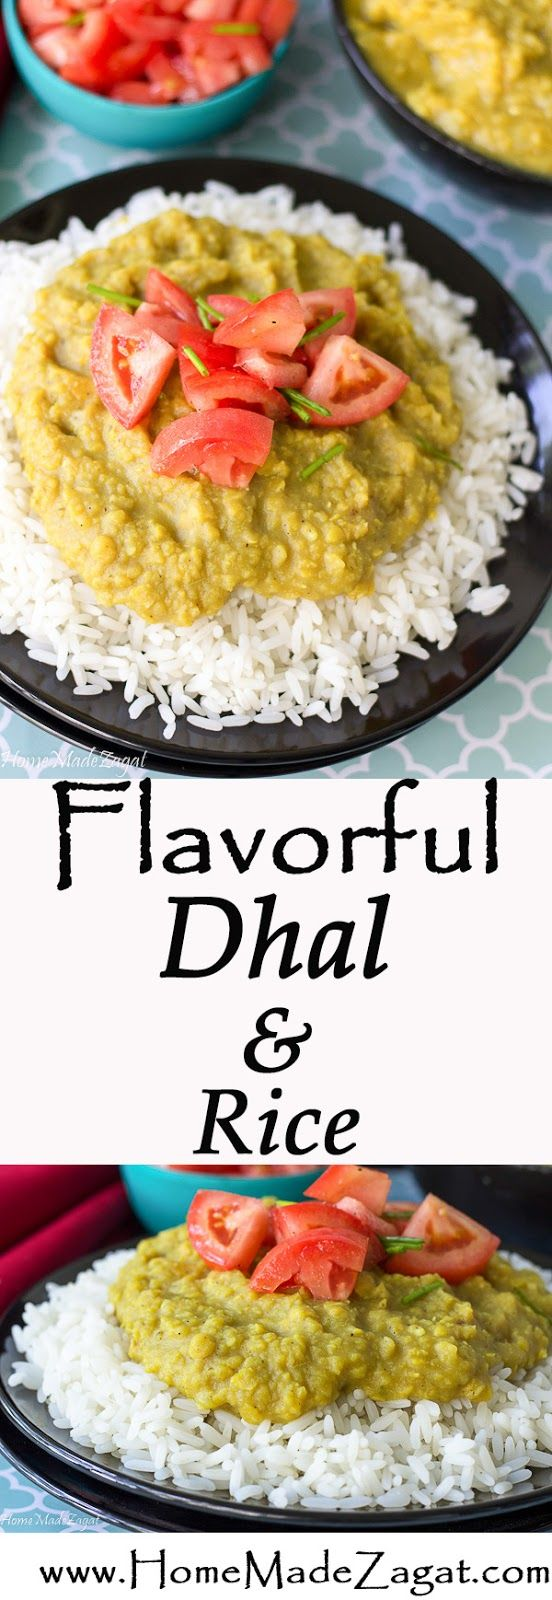 A flavorful, low simmer, no fuss recipe for dhal made from split peas and served…